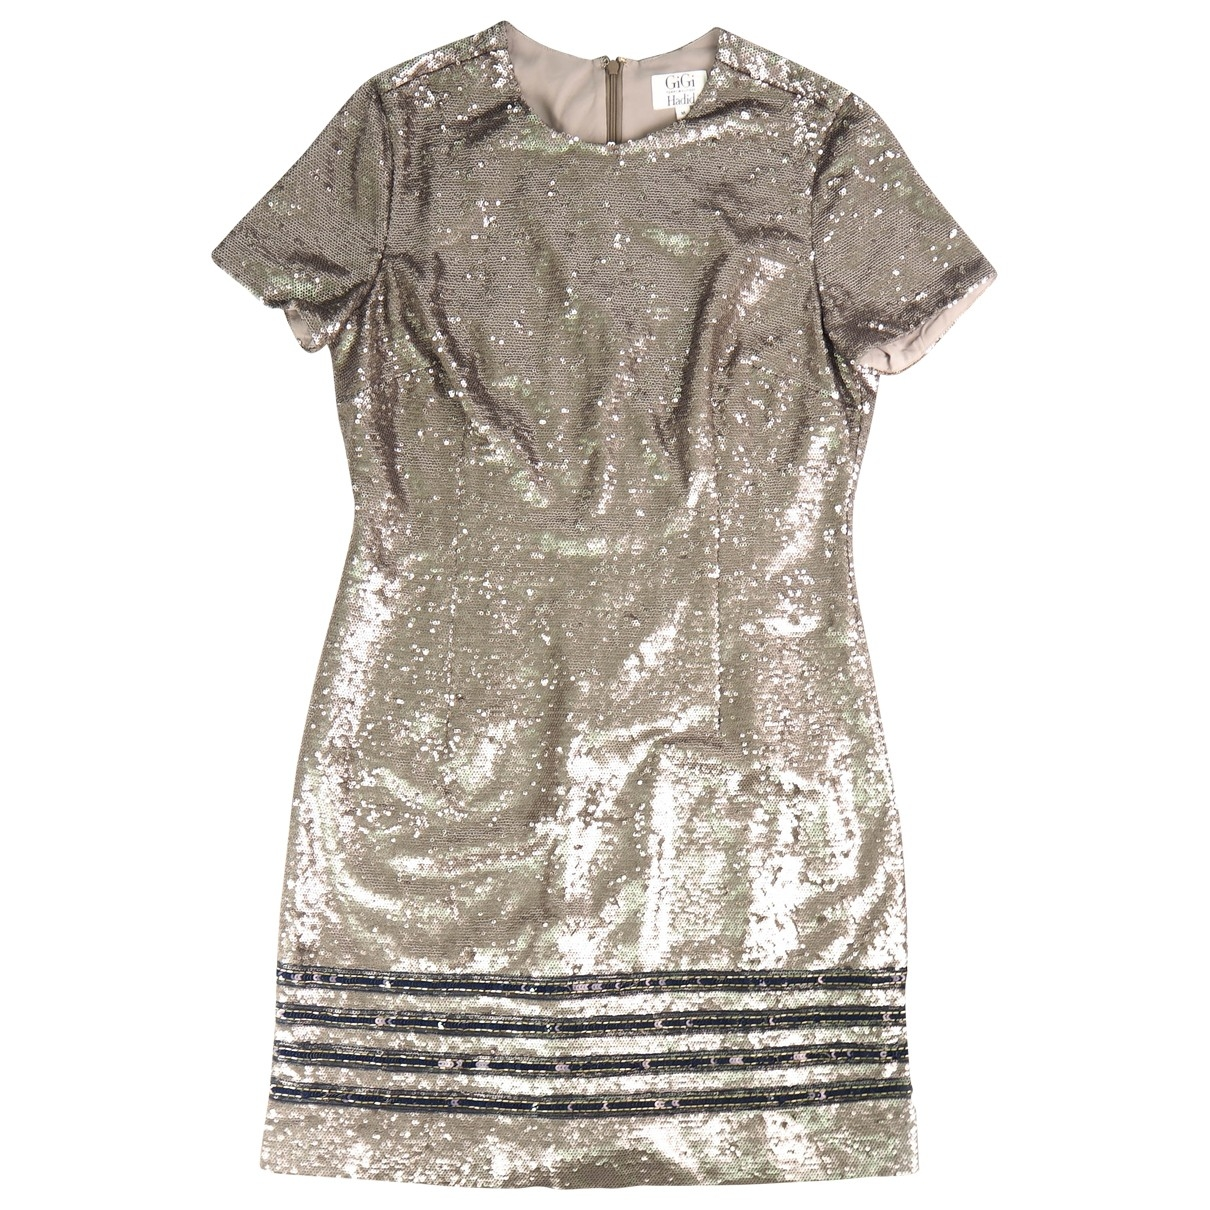 Gigi Hadid X Tommy Hilfiger \N Silver dress for Women M International